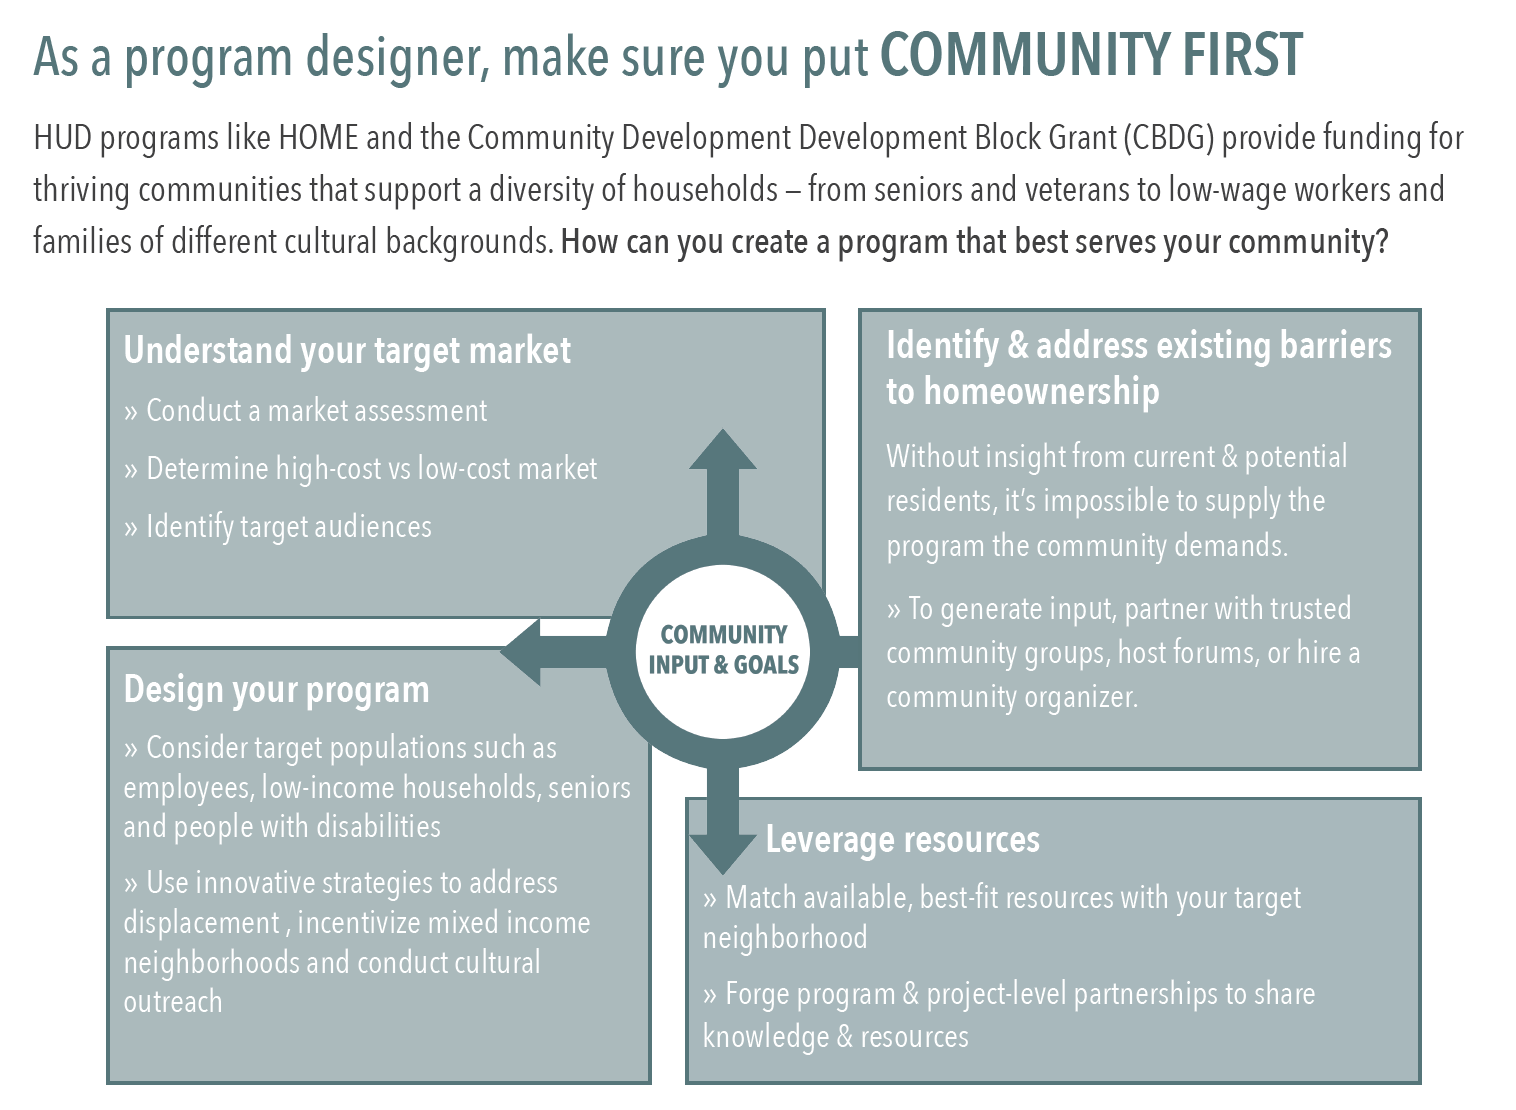 Community First: Key lessons for housing development and revitalization